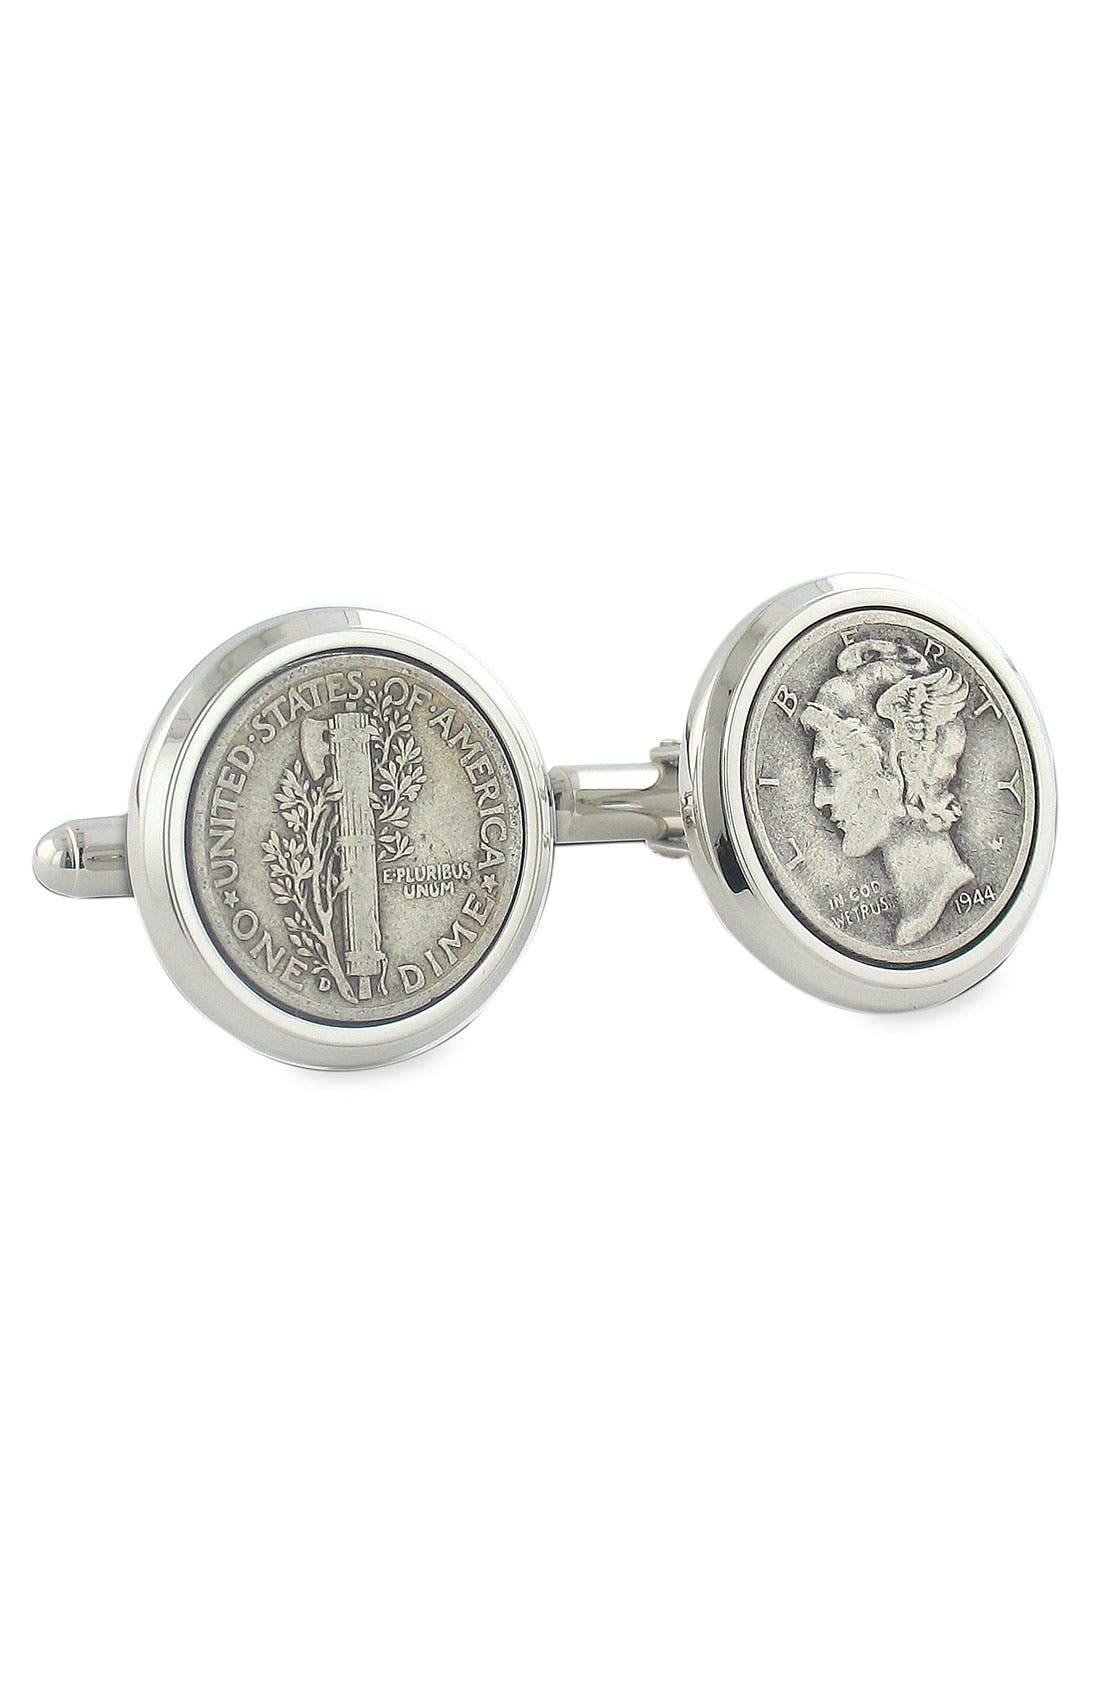 Alternate Image 1 Selected - David Donahue Mercury Dime Cuff Links